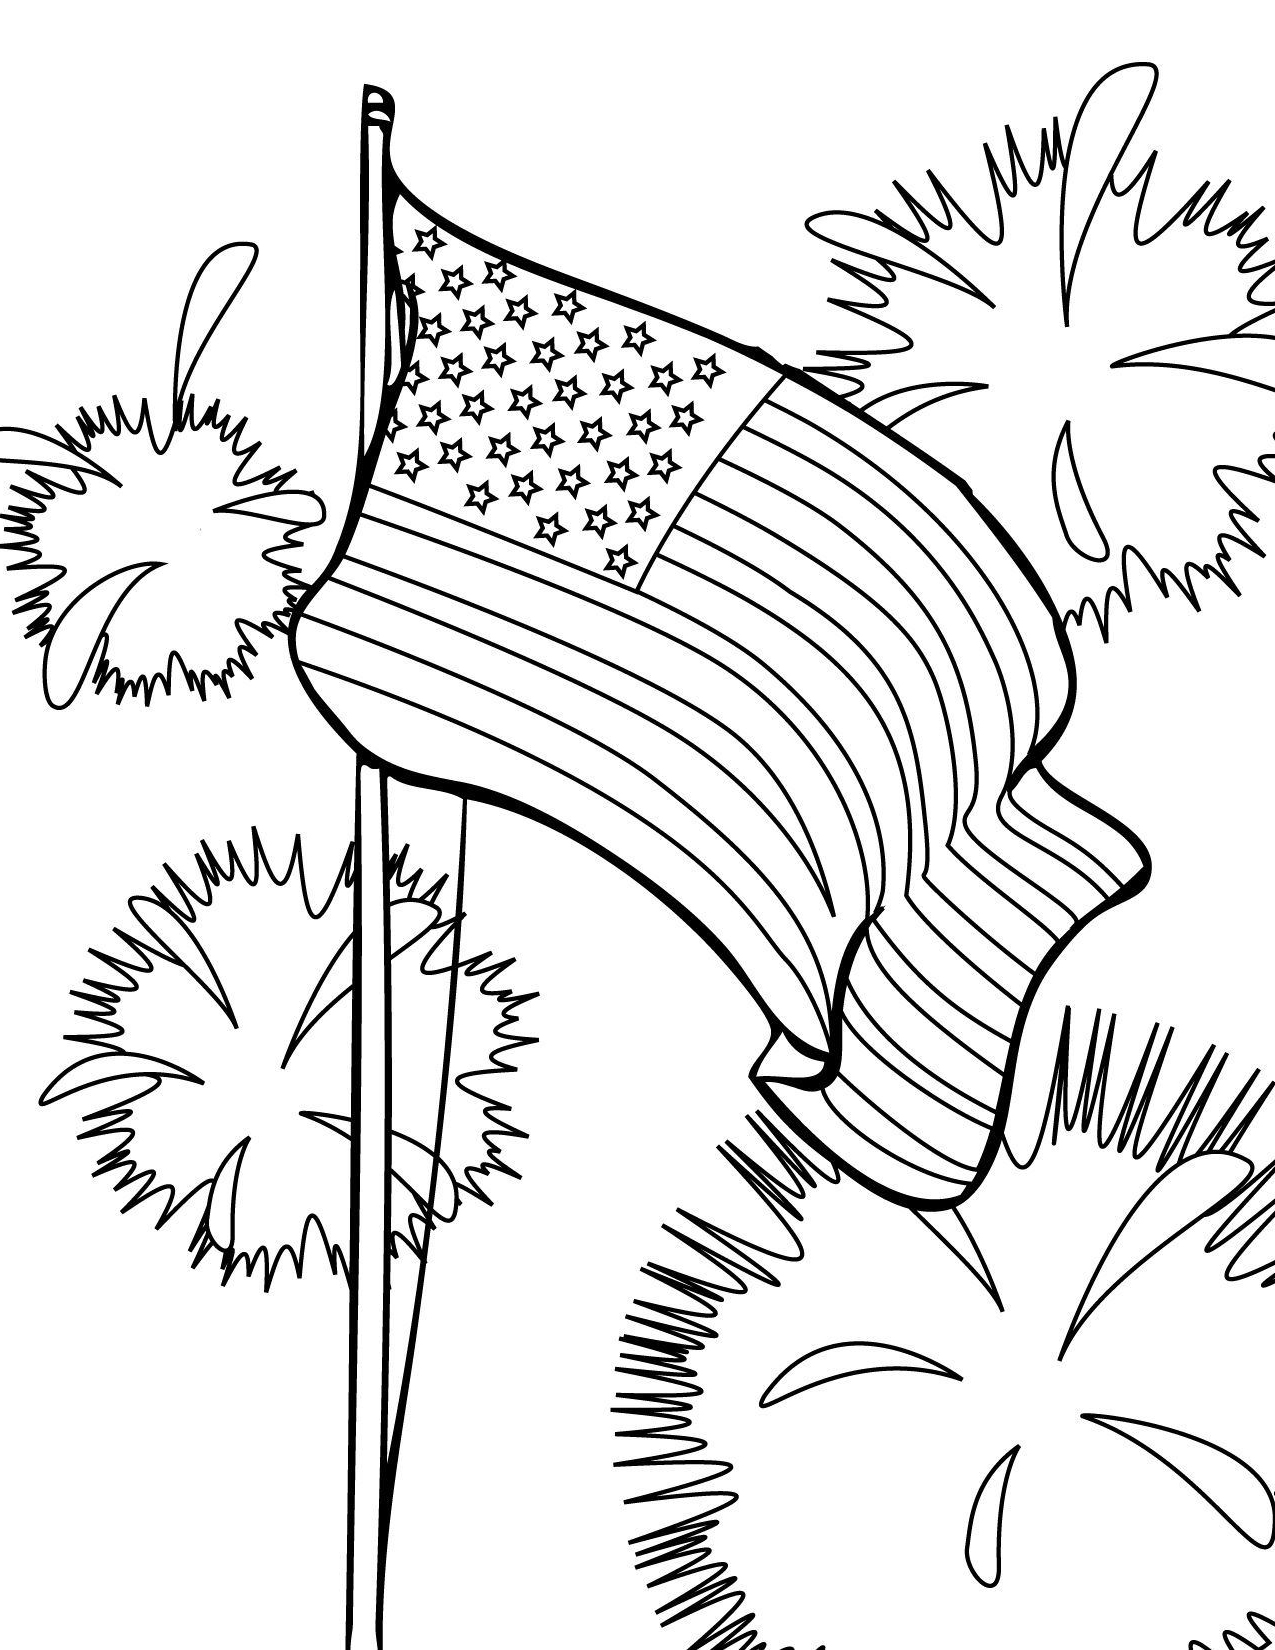 usa flag to colour american flag coloring page memorial day american to colour usa flag